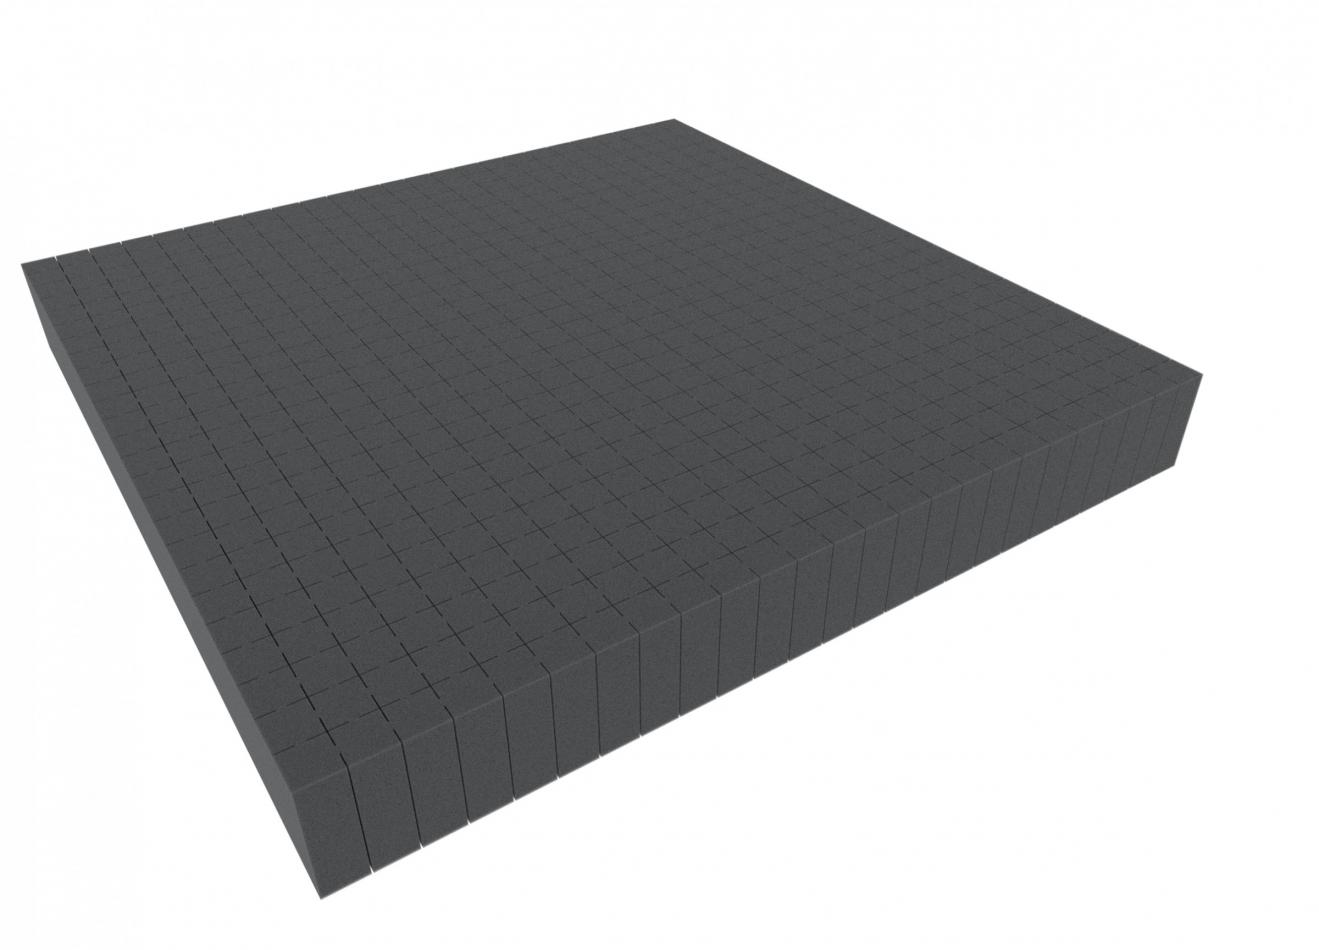 1000 mm x 1000 mm x 60 mm - Raster 20 mm - Pick and Pluck / Pre-Cubed foam tray